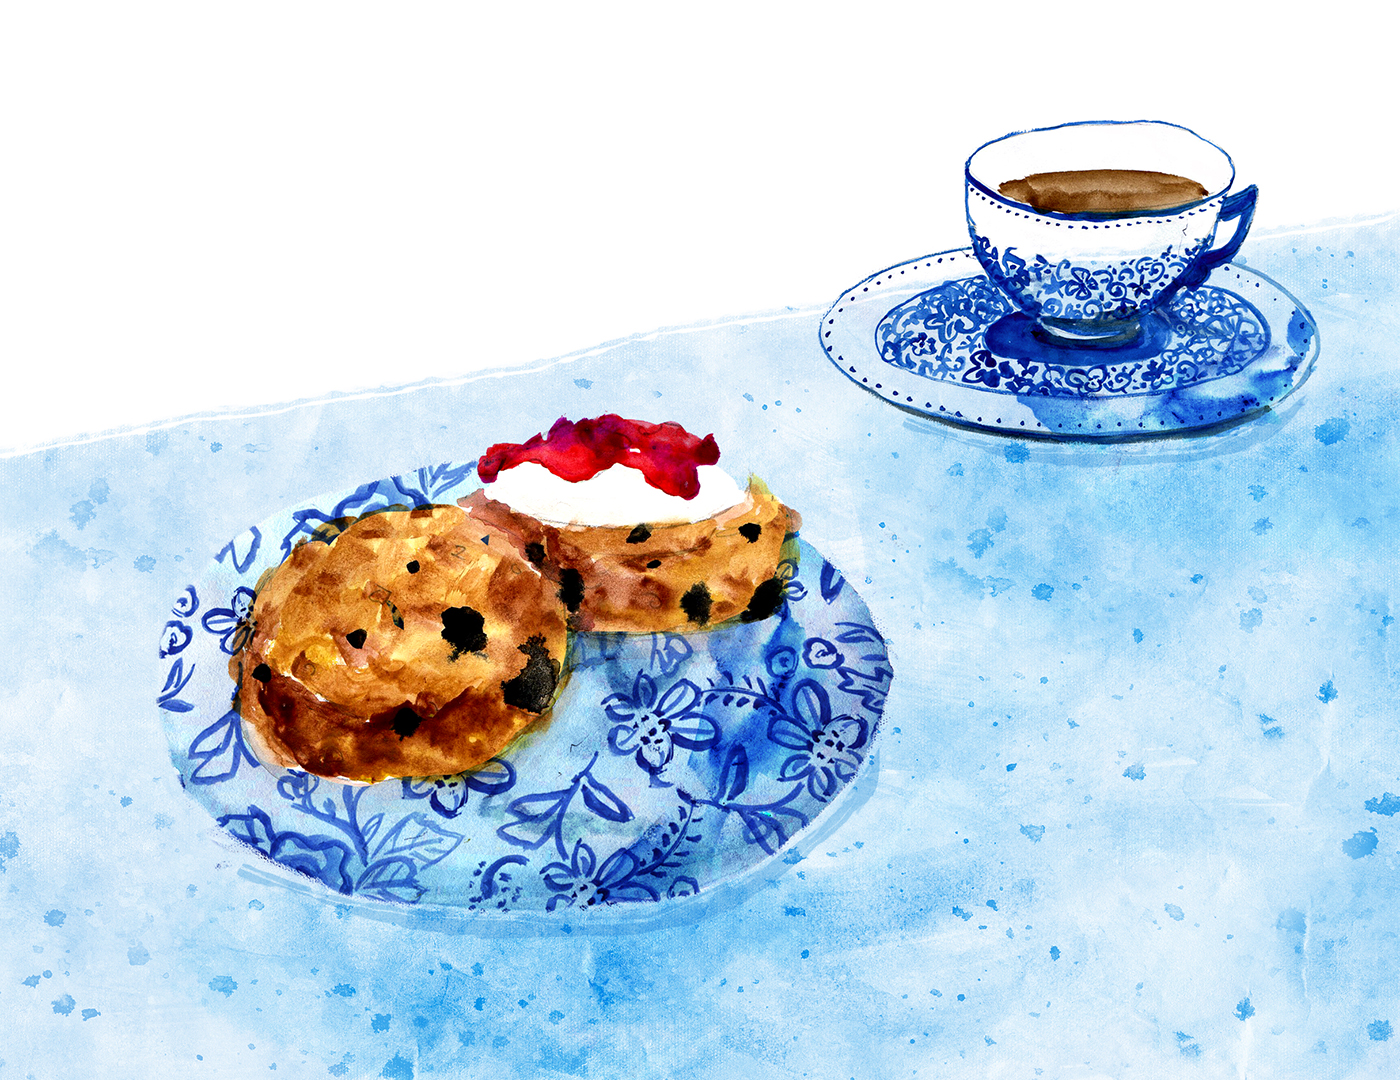 Oatmeal Scones, Minty's Table, Lauren Monaco Illustration, Raisin, Currant, Apricot Rosemary scone